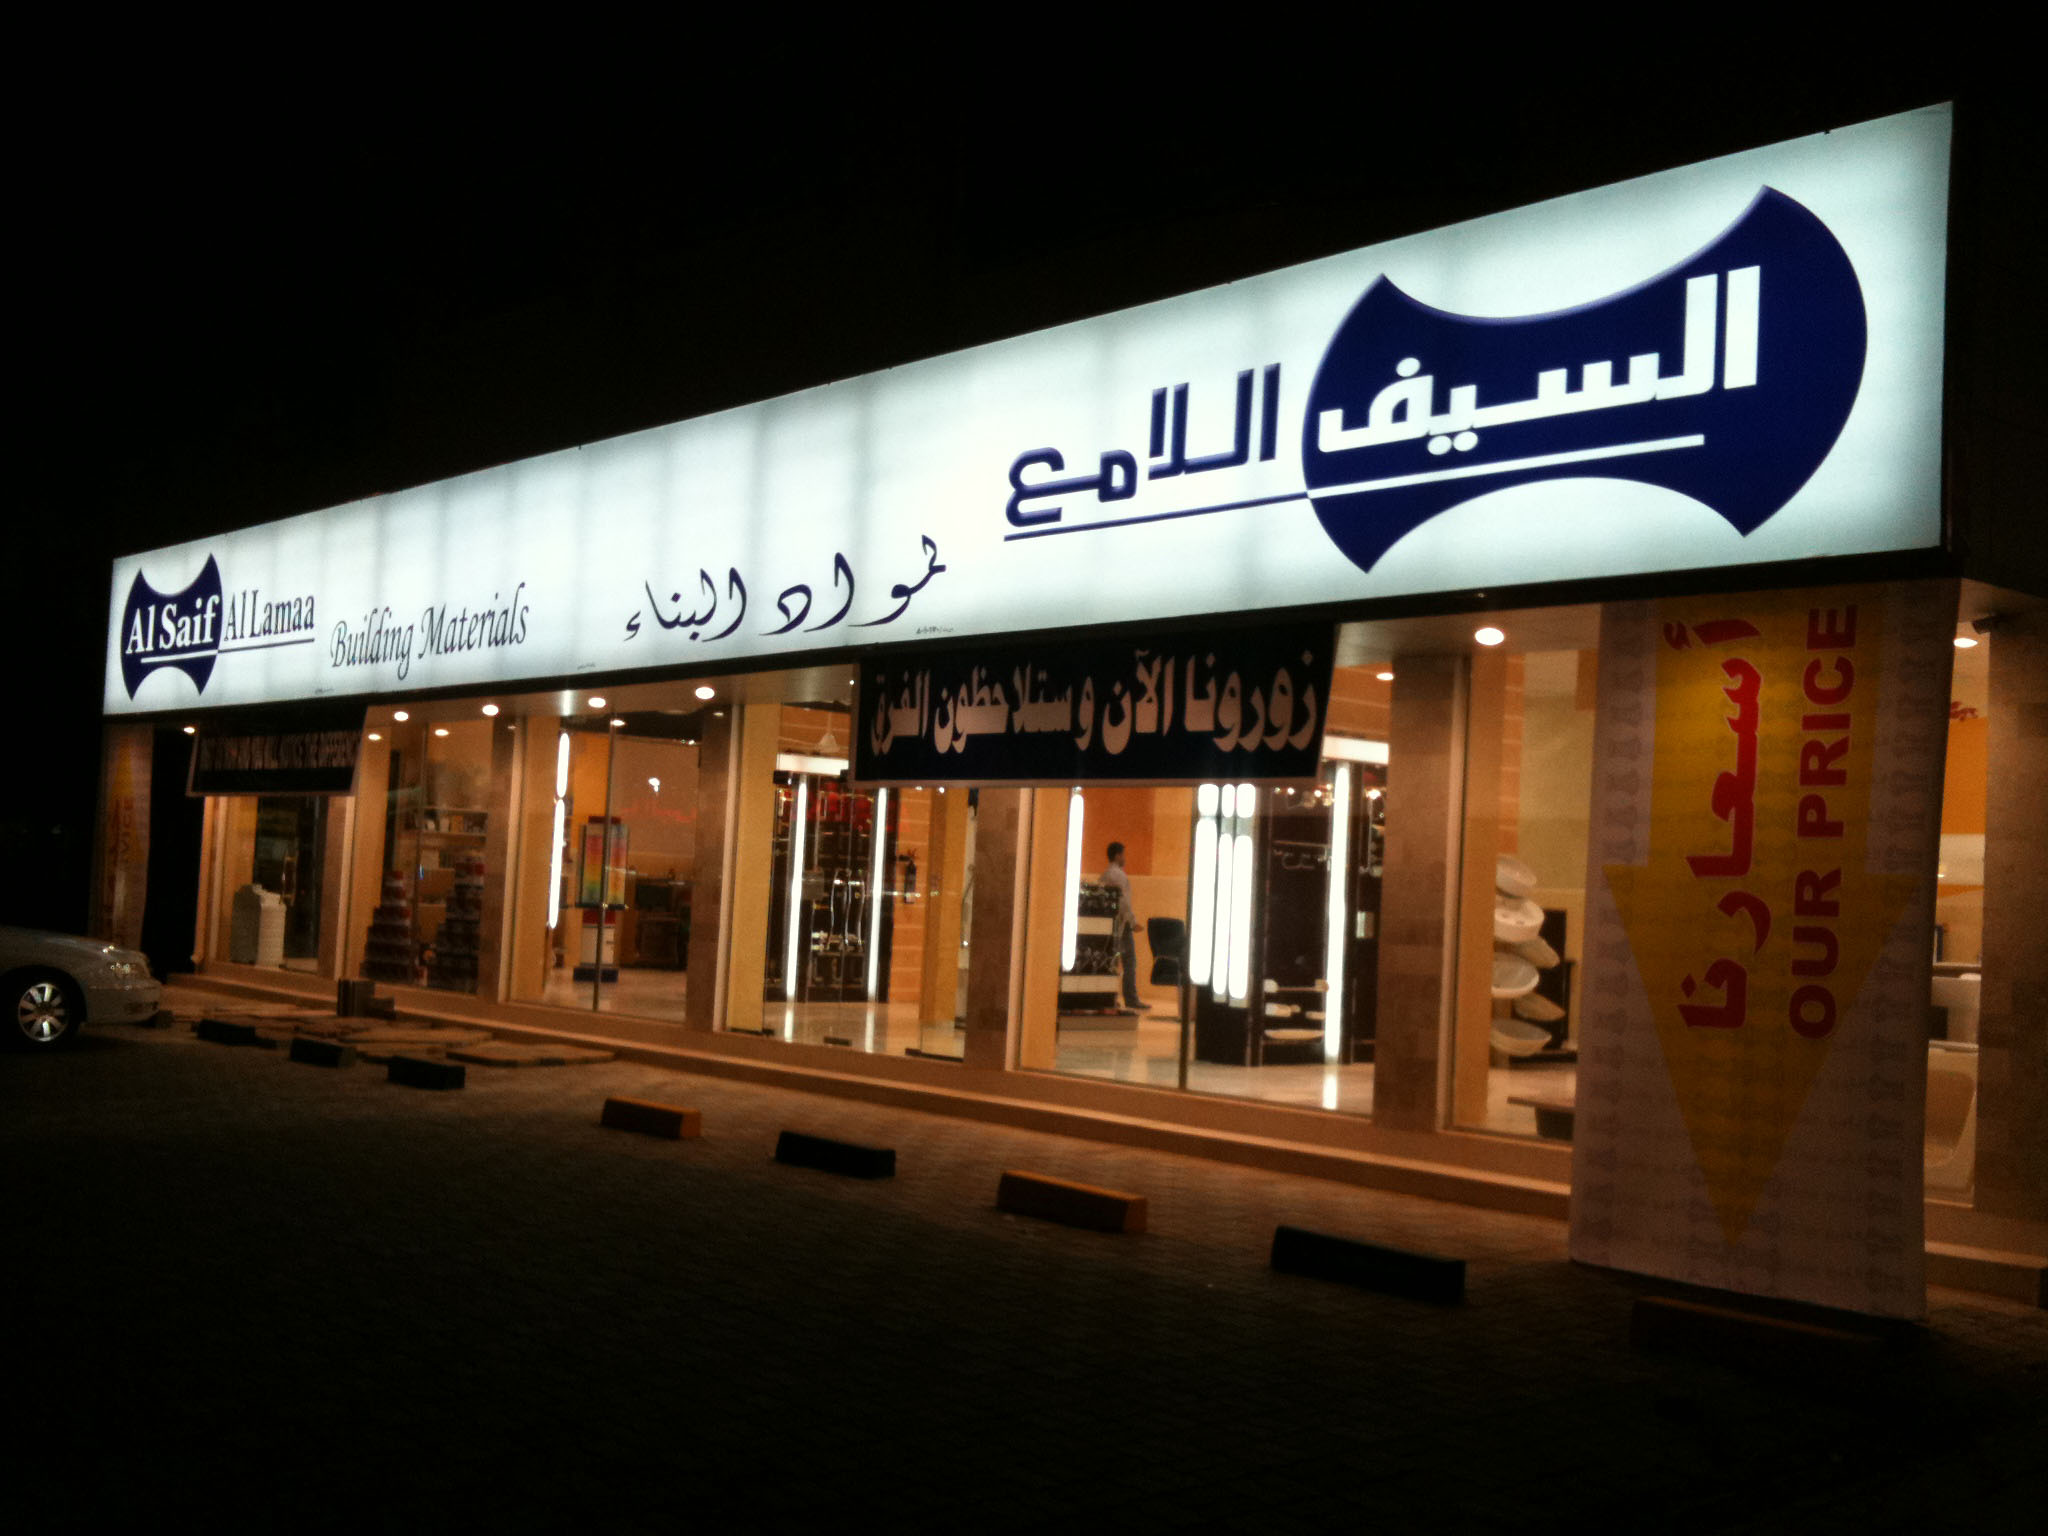 Al Saif Al Lamaa Company Lunched its Latest and the largest showroom in the region